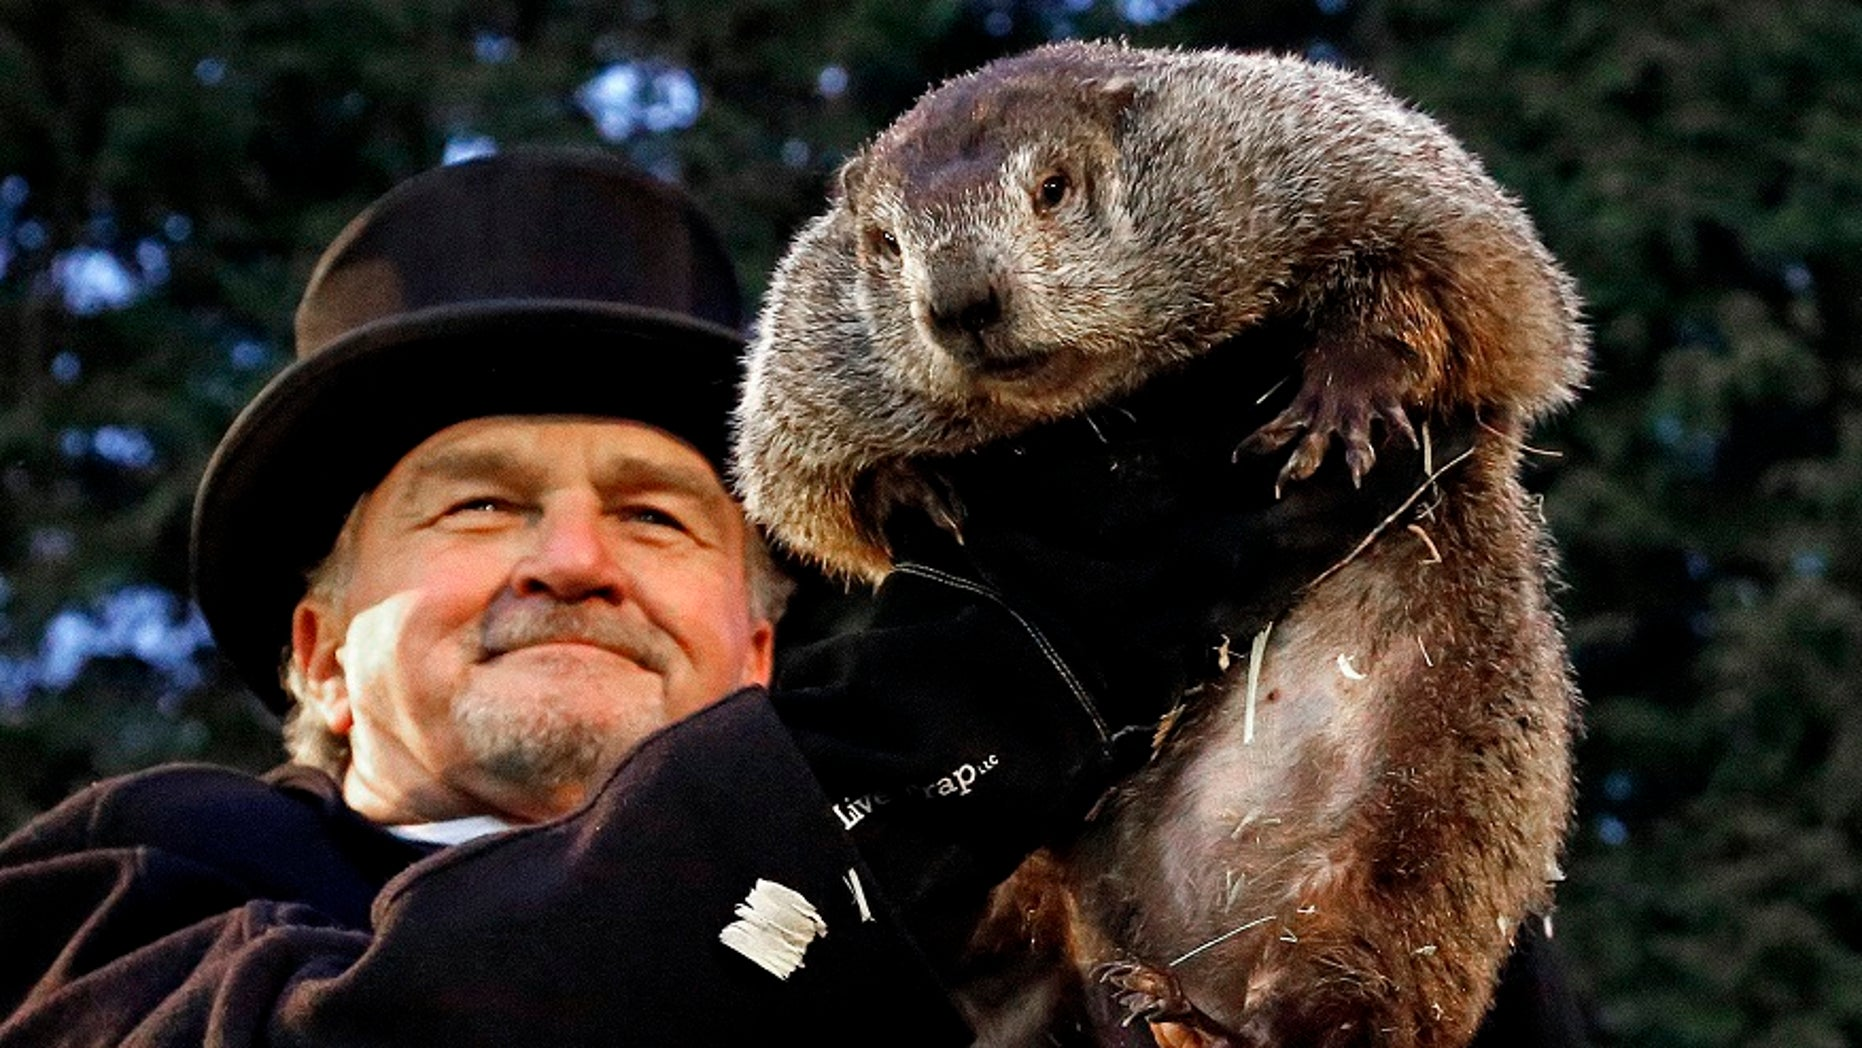 Punxsutawney Phil predicted six more weeks of winter Friday, Feb. 2, 2018.